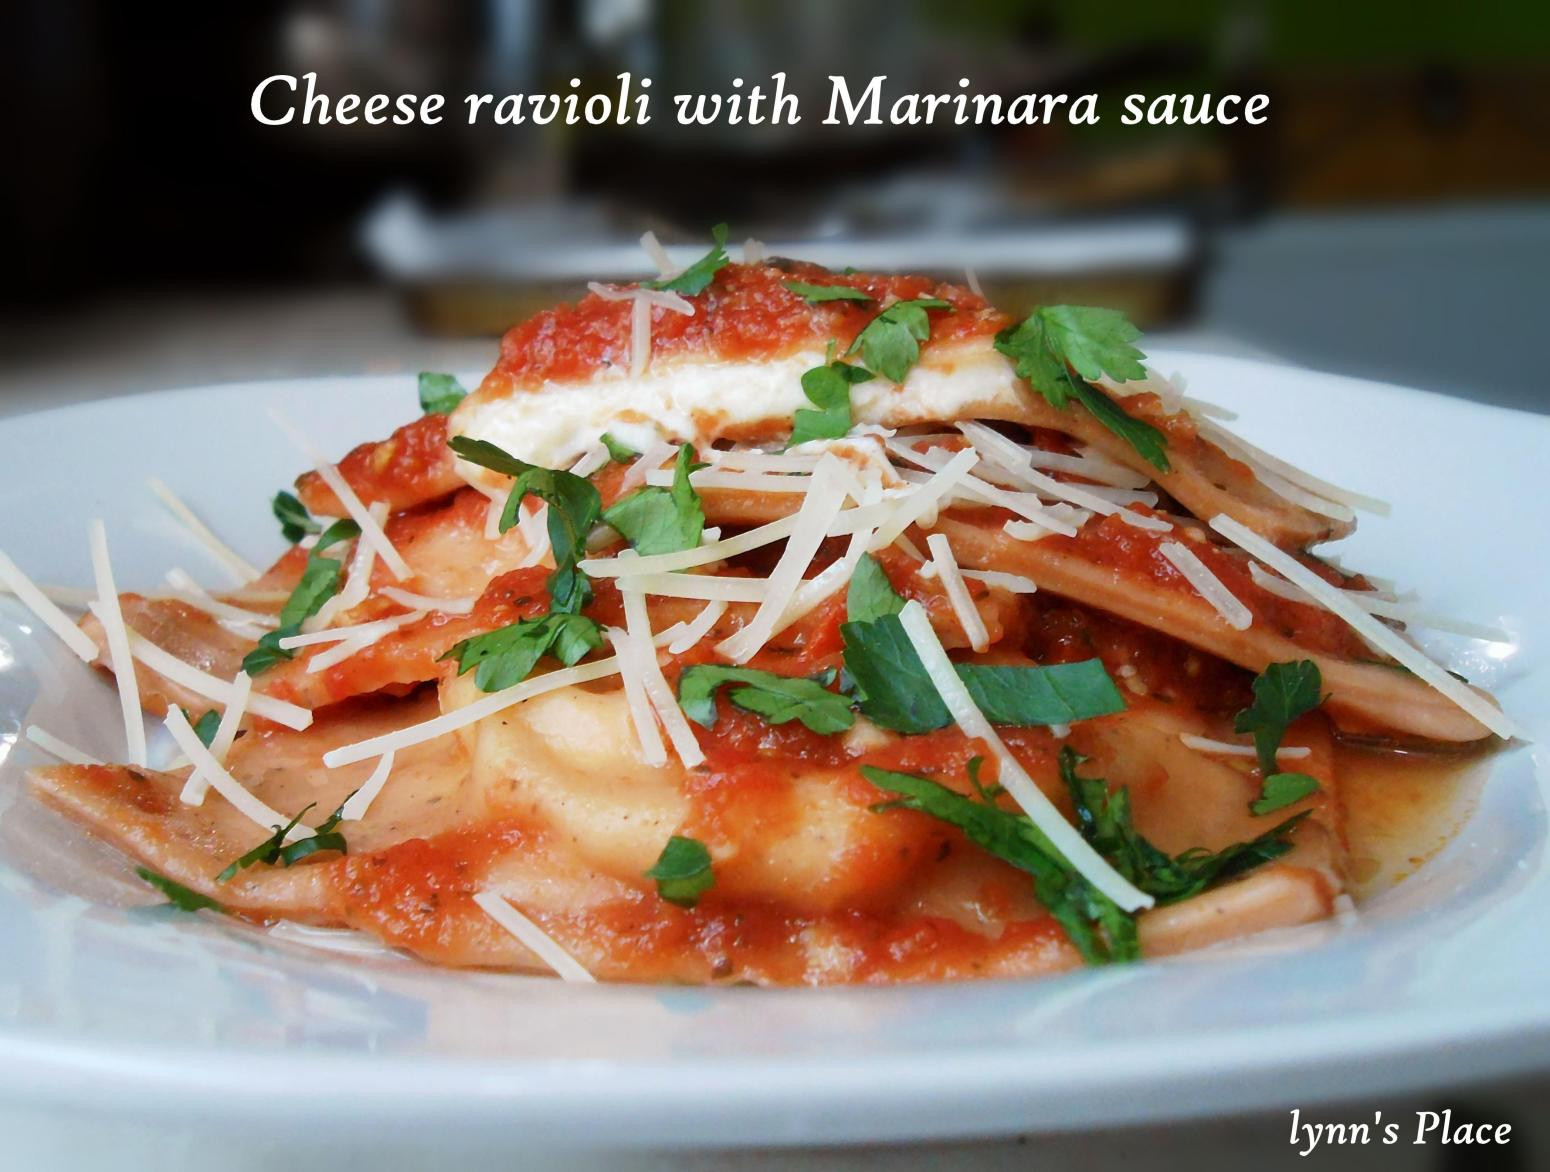 Cheese ravioli sauce recipes - 40 minutes full body workout